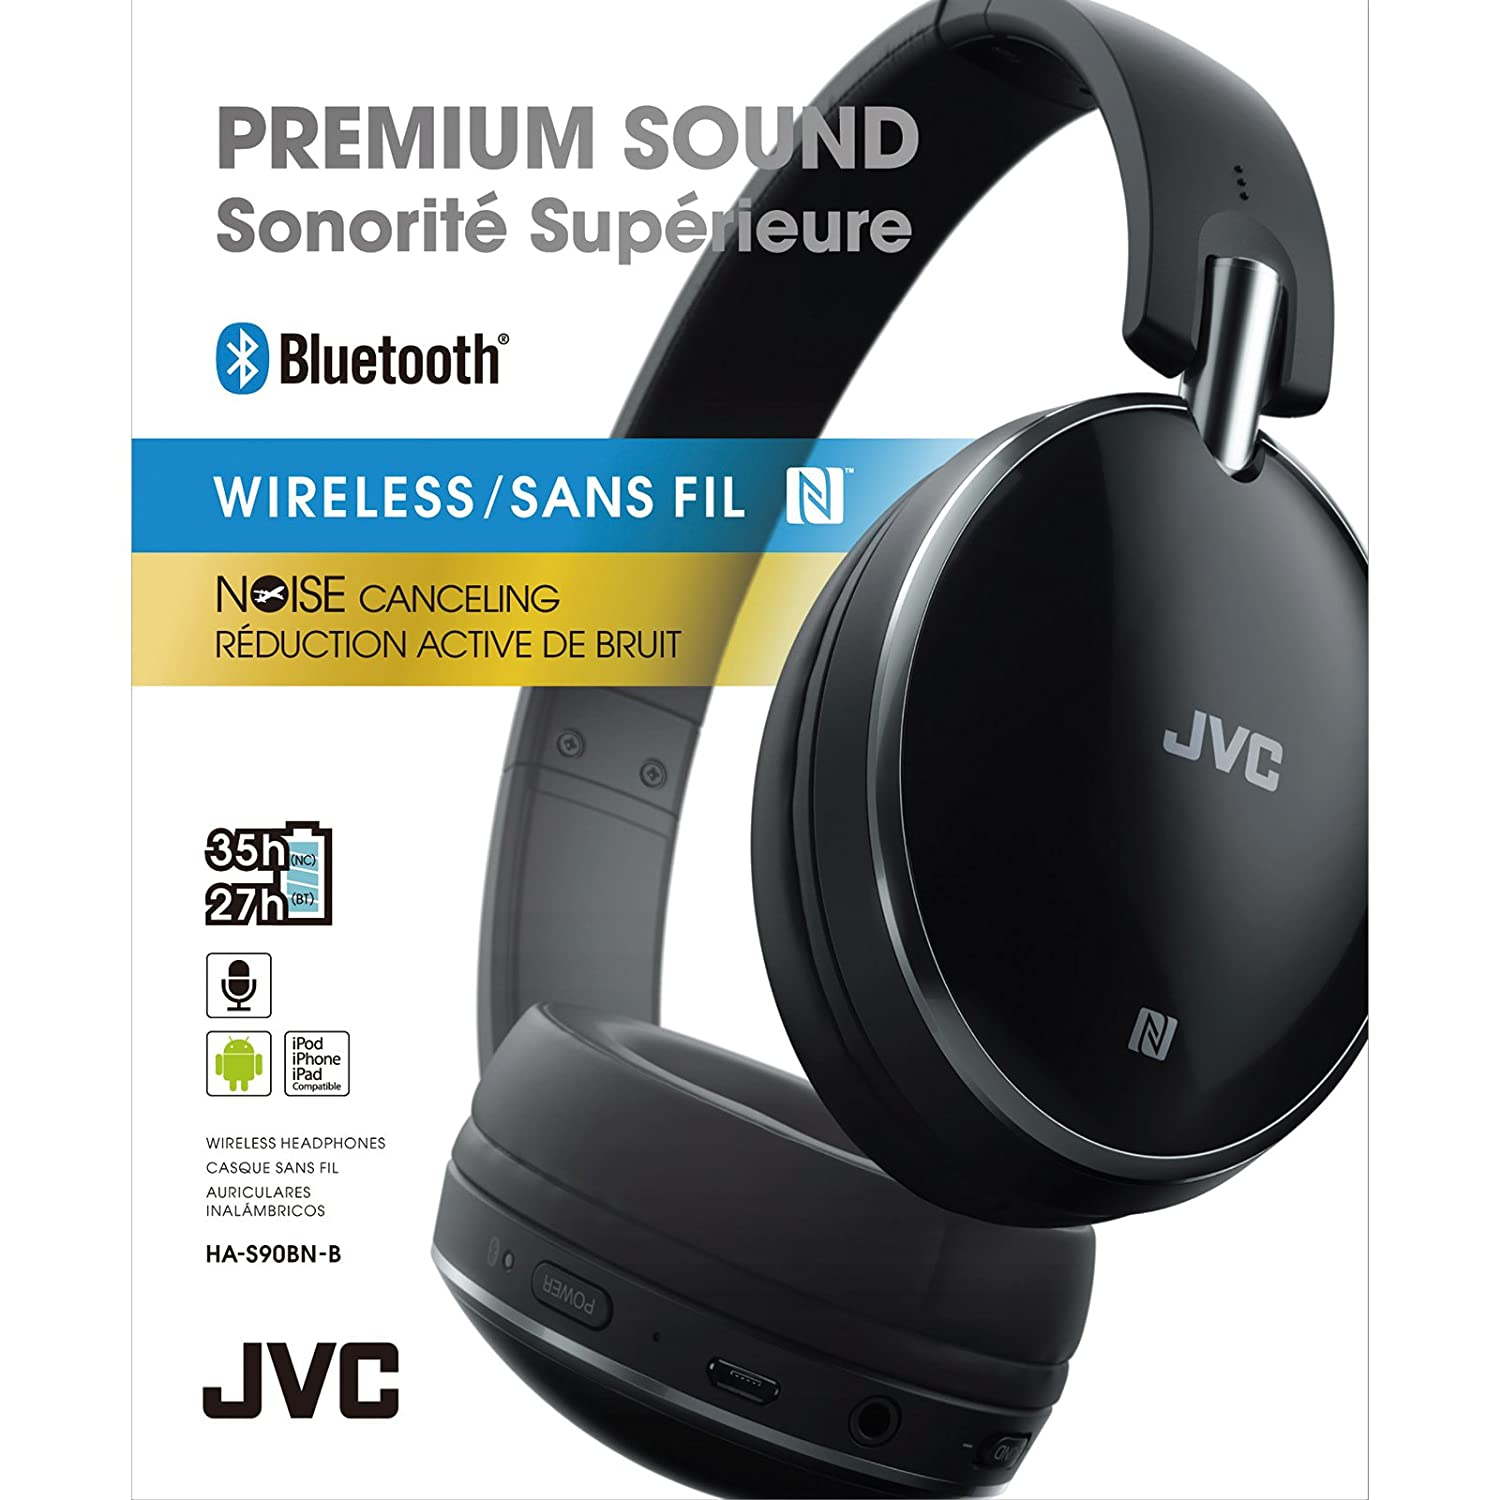 Amazon.com: JVC HA-S90BN Noise Cancelling On-Ear Bluetooth Headphones (Black) with Portable Charger + Stylus Pen + (3) Cleaning Cloths Kit: JVC: Home Audio ...